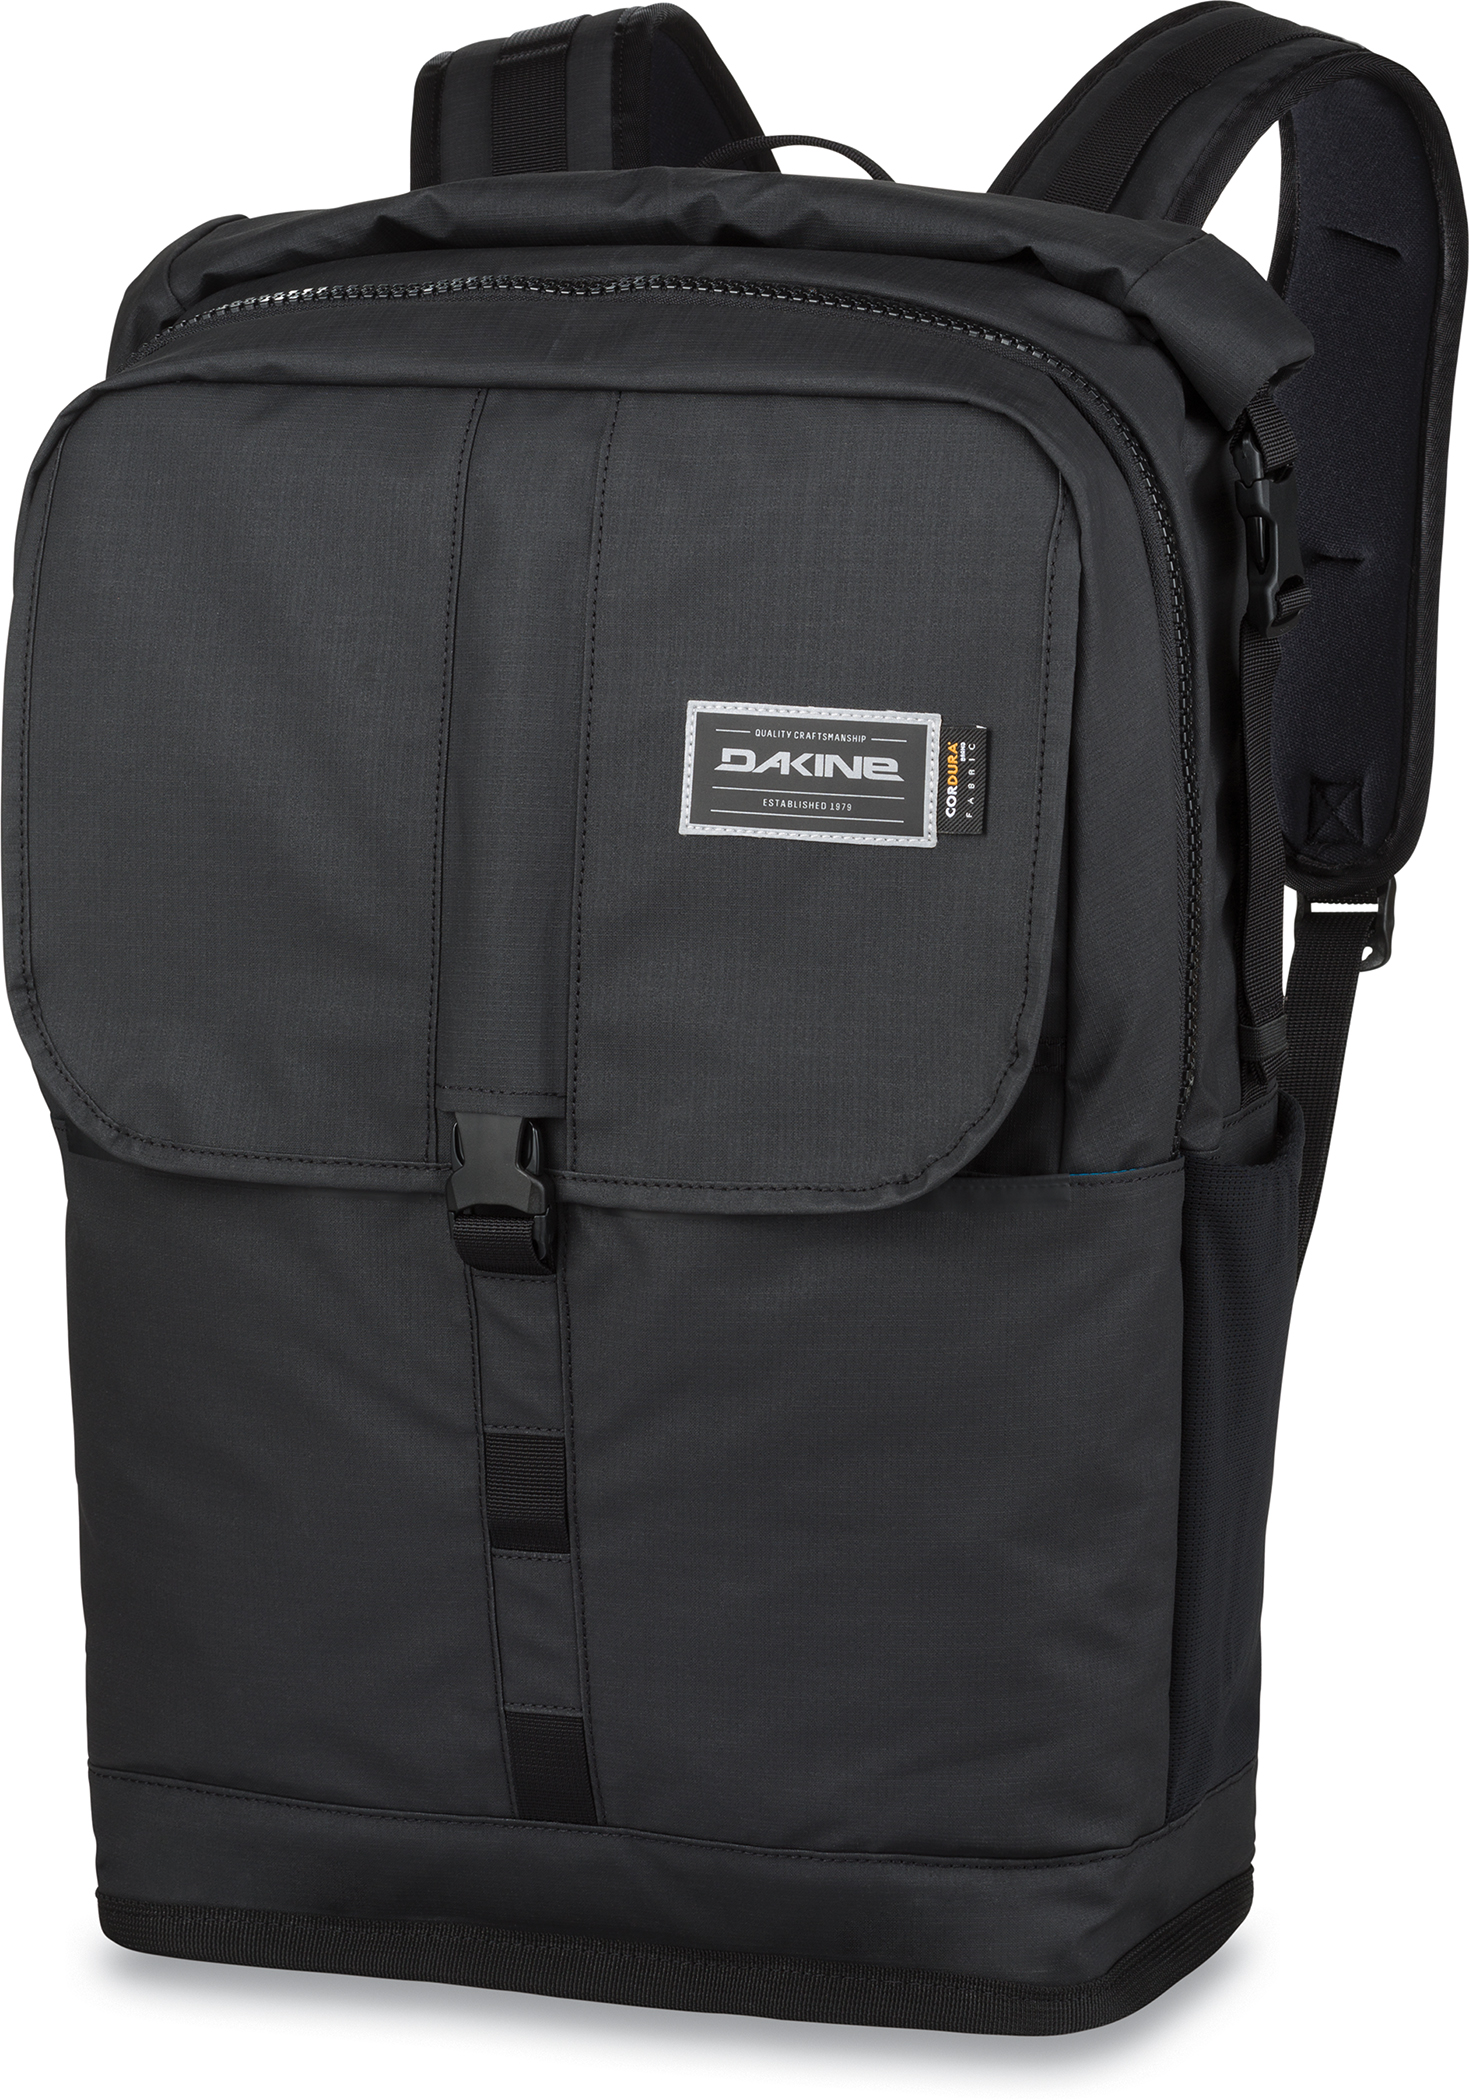 Dakine Bags Backpacks SS18 Preview